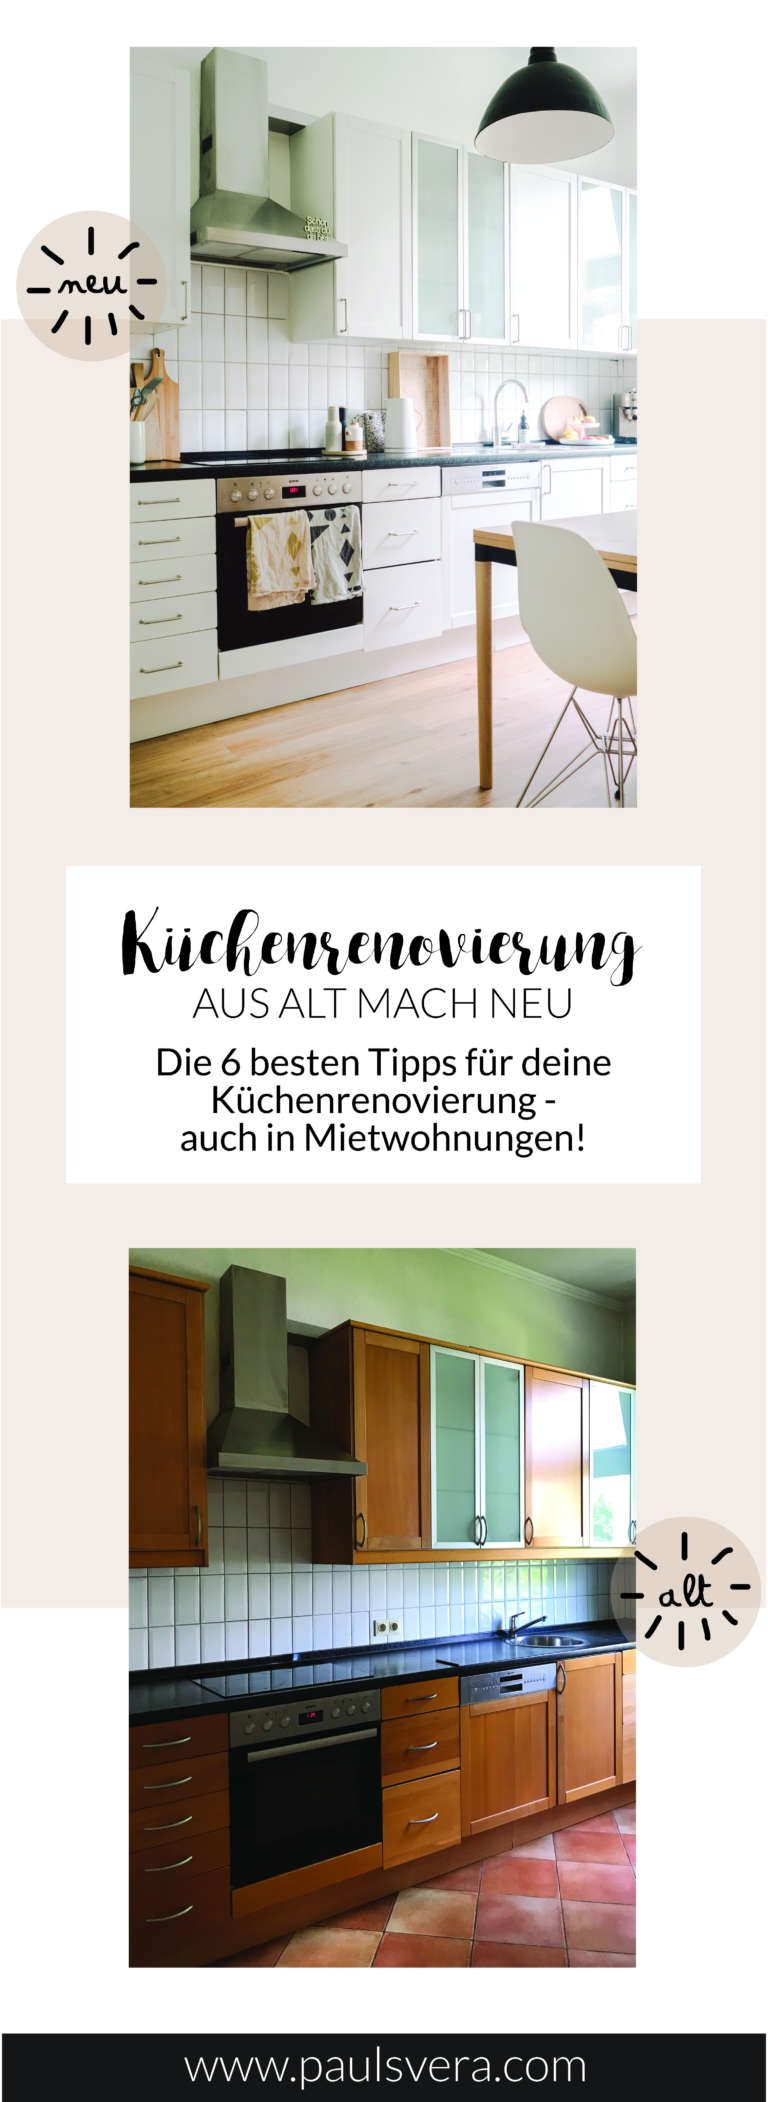 k chenrenovierung aus alt mach neu paulsvera. Black Bedroom Furniture Sets. Home Design Ideas